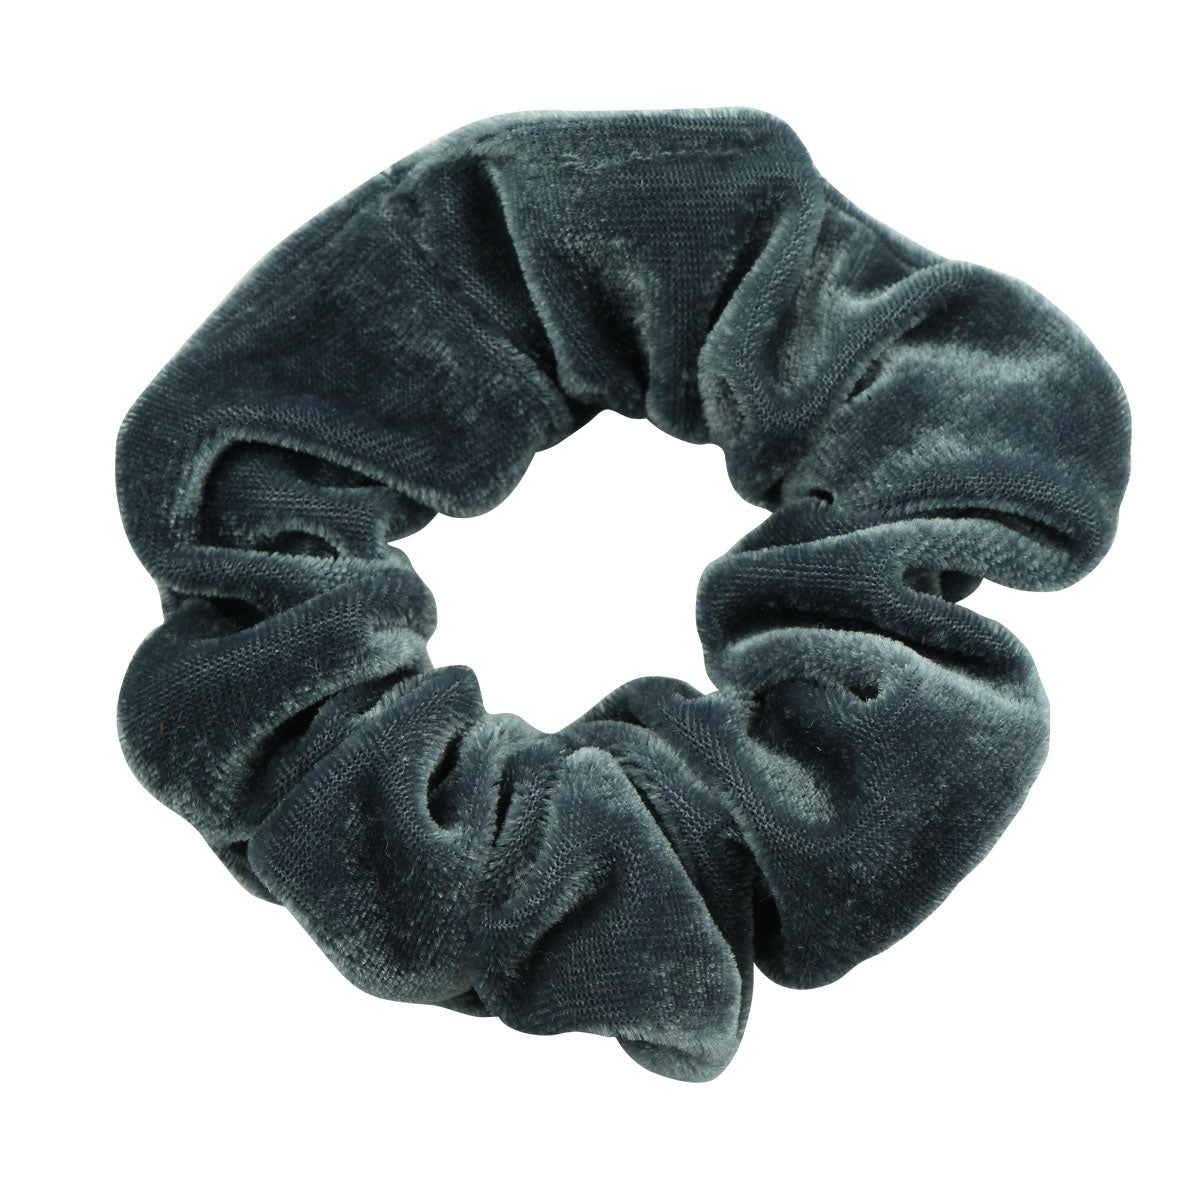 Hair Scrunchies Velvet Elastic Hair Bands Scrunchy Hair Ties Ropes Scrunchies for Women or Girls Hair Accessories 5585